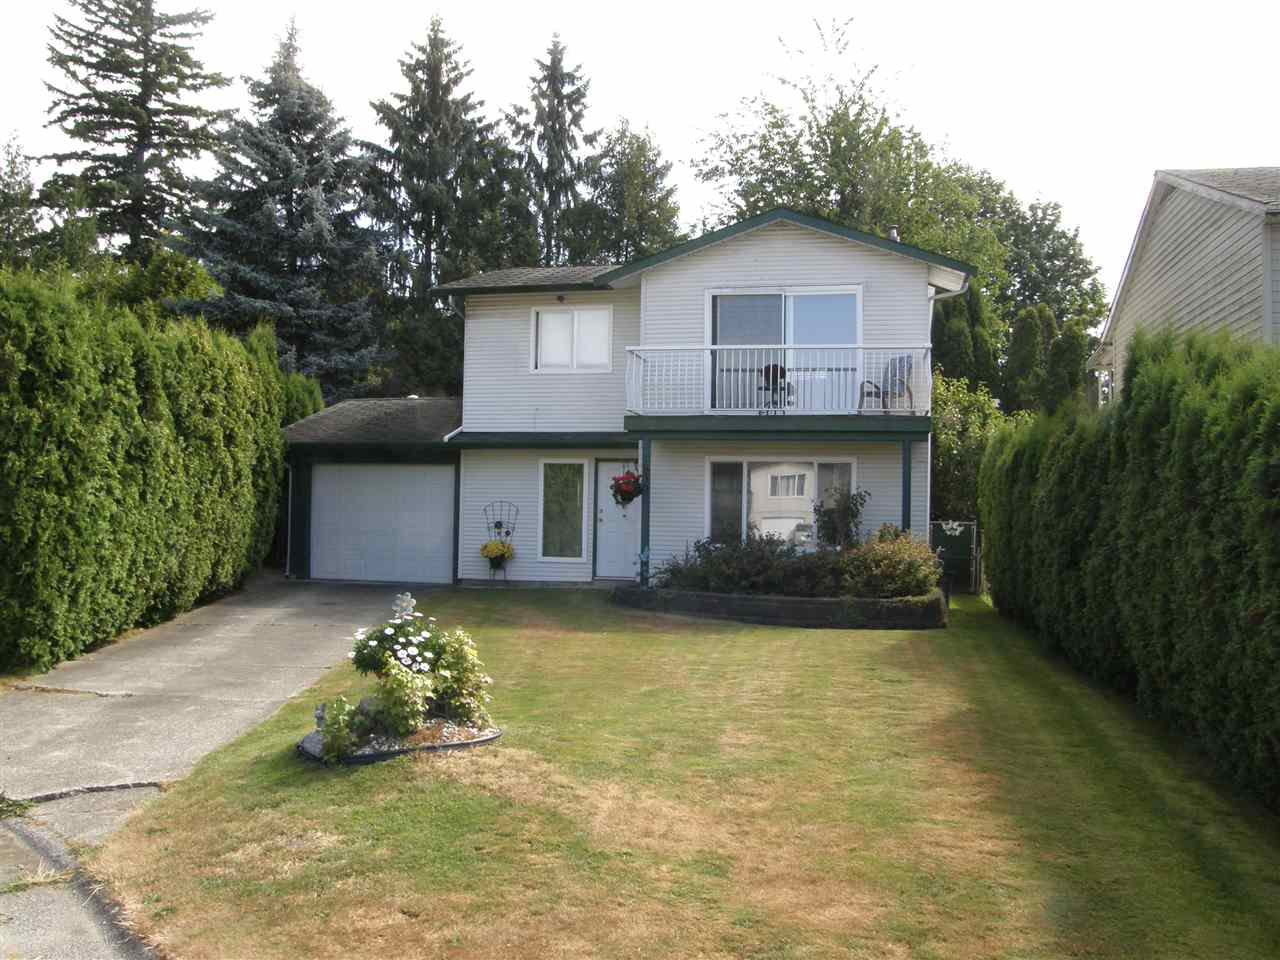 Main Photo: 1830 REEVES Place in Abbotsford: Central Abbotsford House for sale : MLS®# R2486642